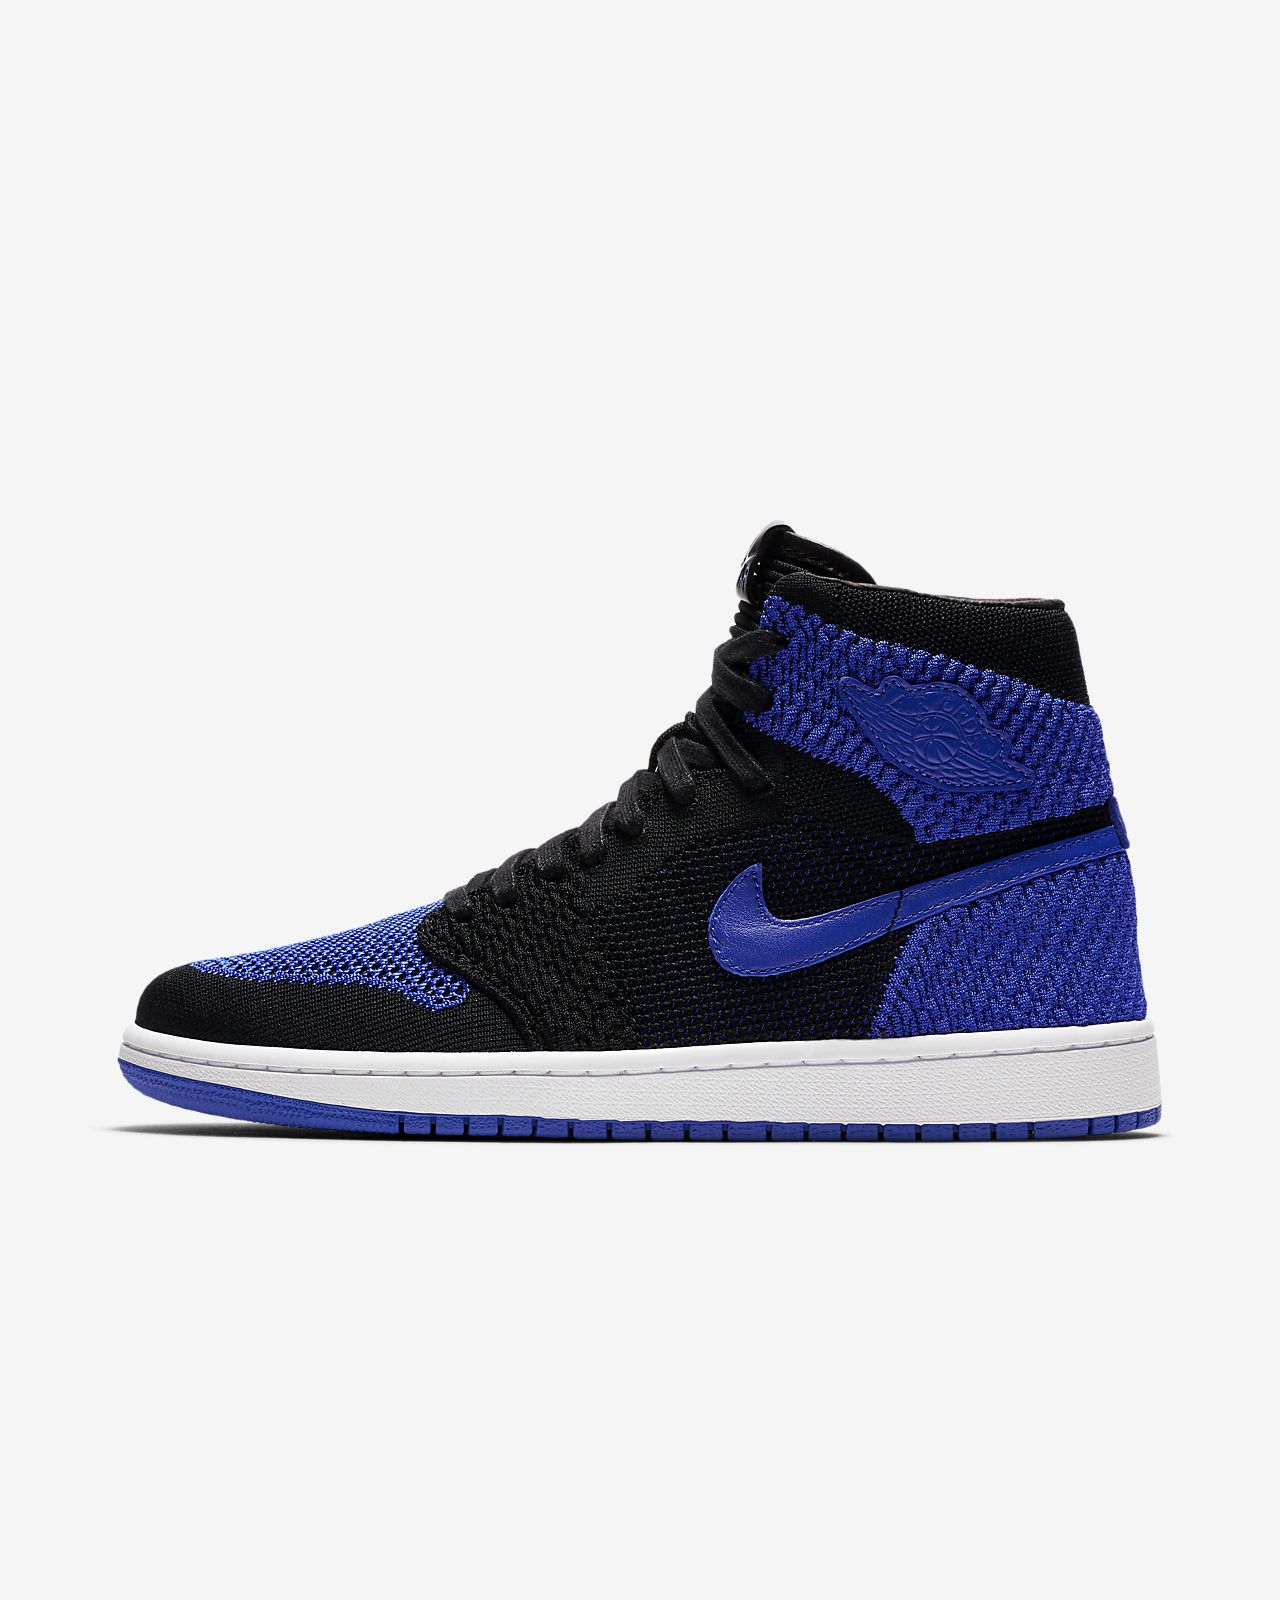 a9b8c1b3377d6f Air Jordan 1 Retro High Flyknit Men s Shoe. Nike.com ZA